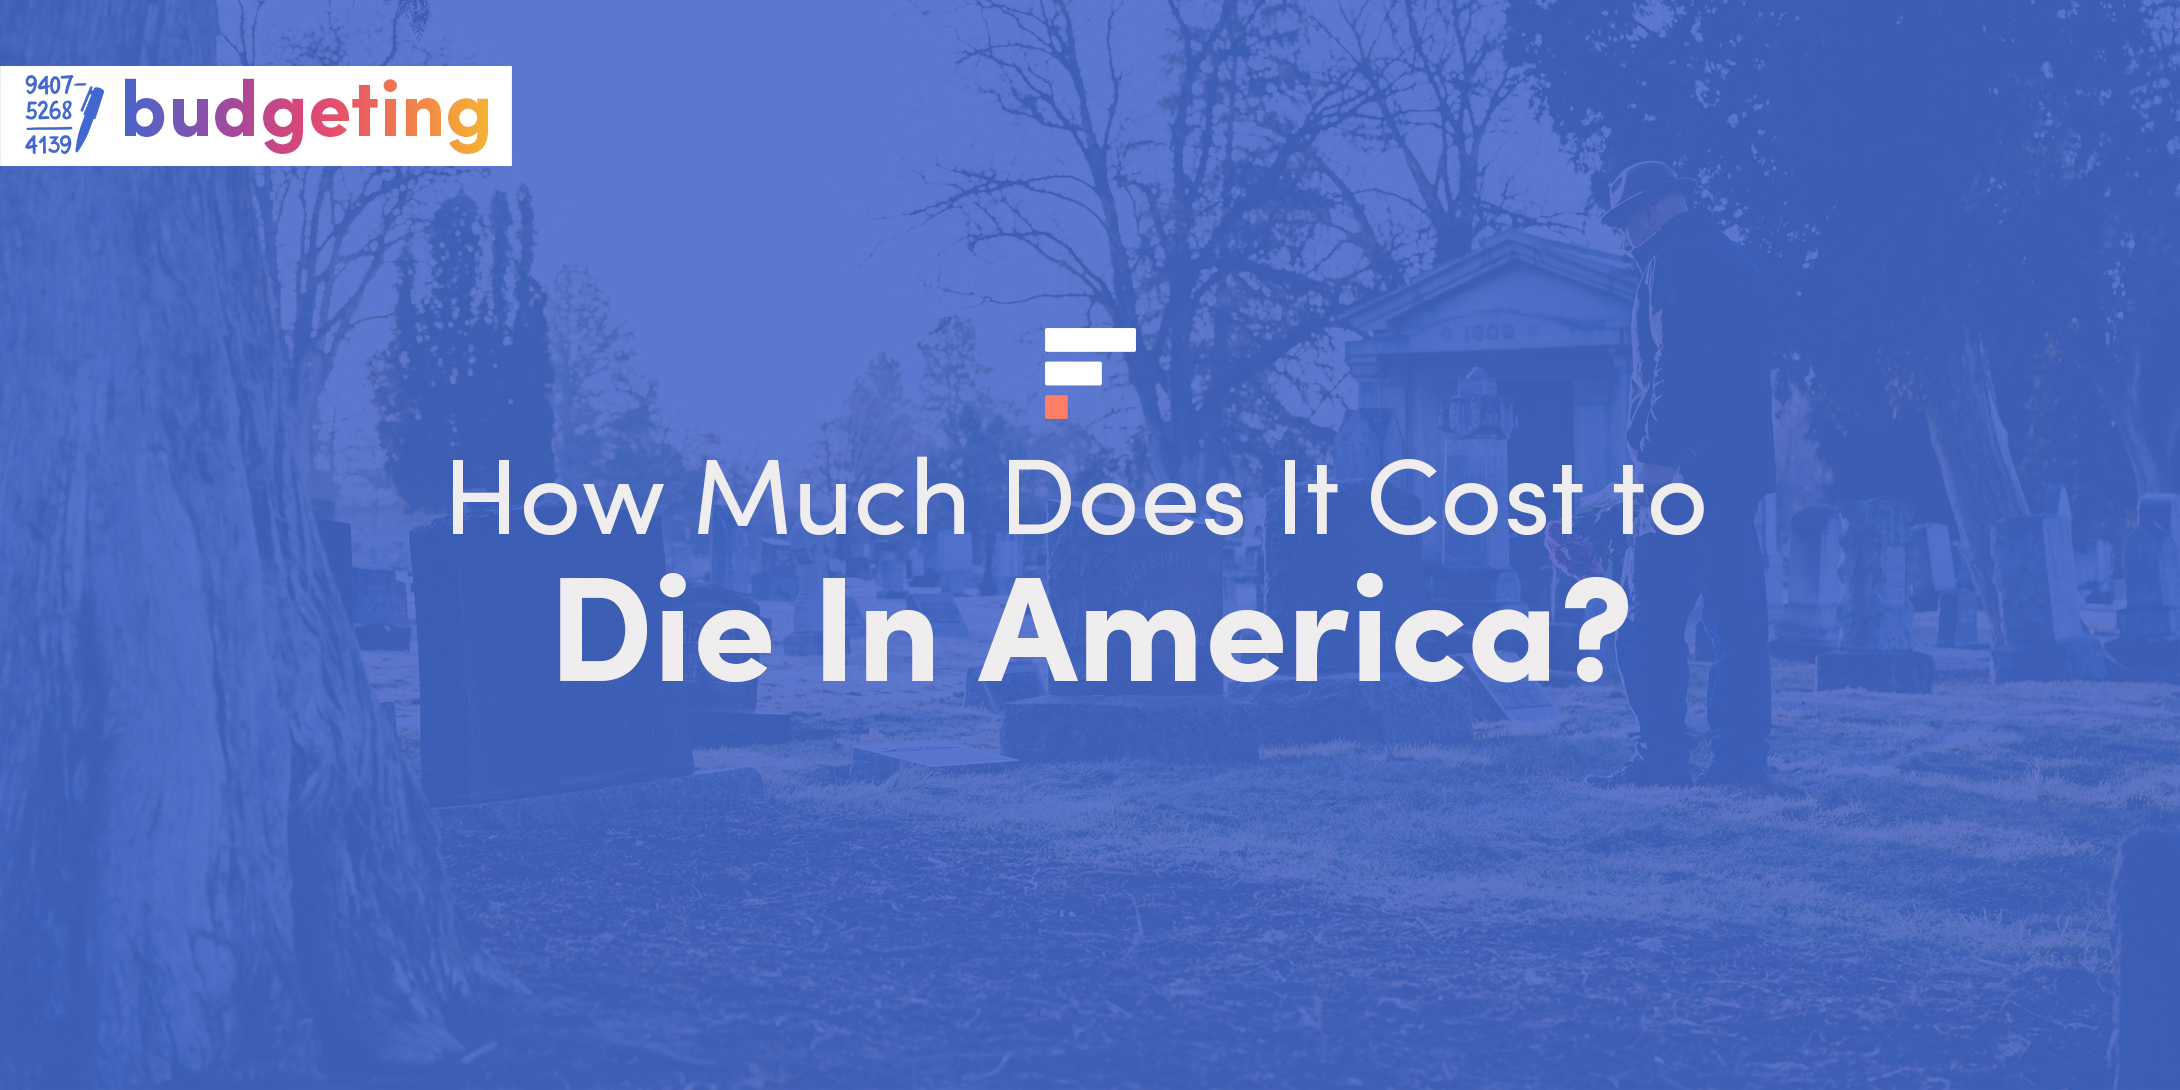 How much does it cost to die in America?